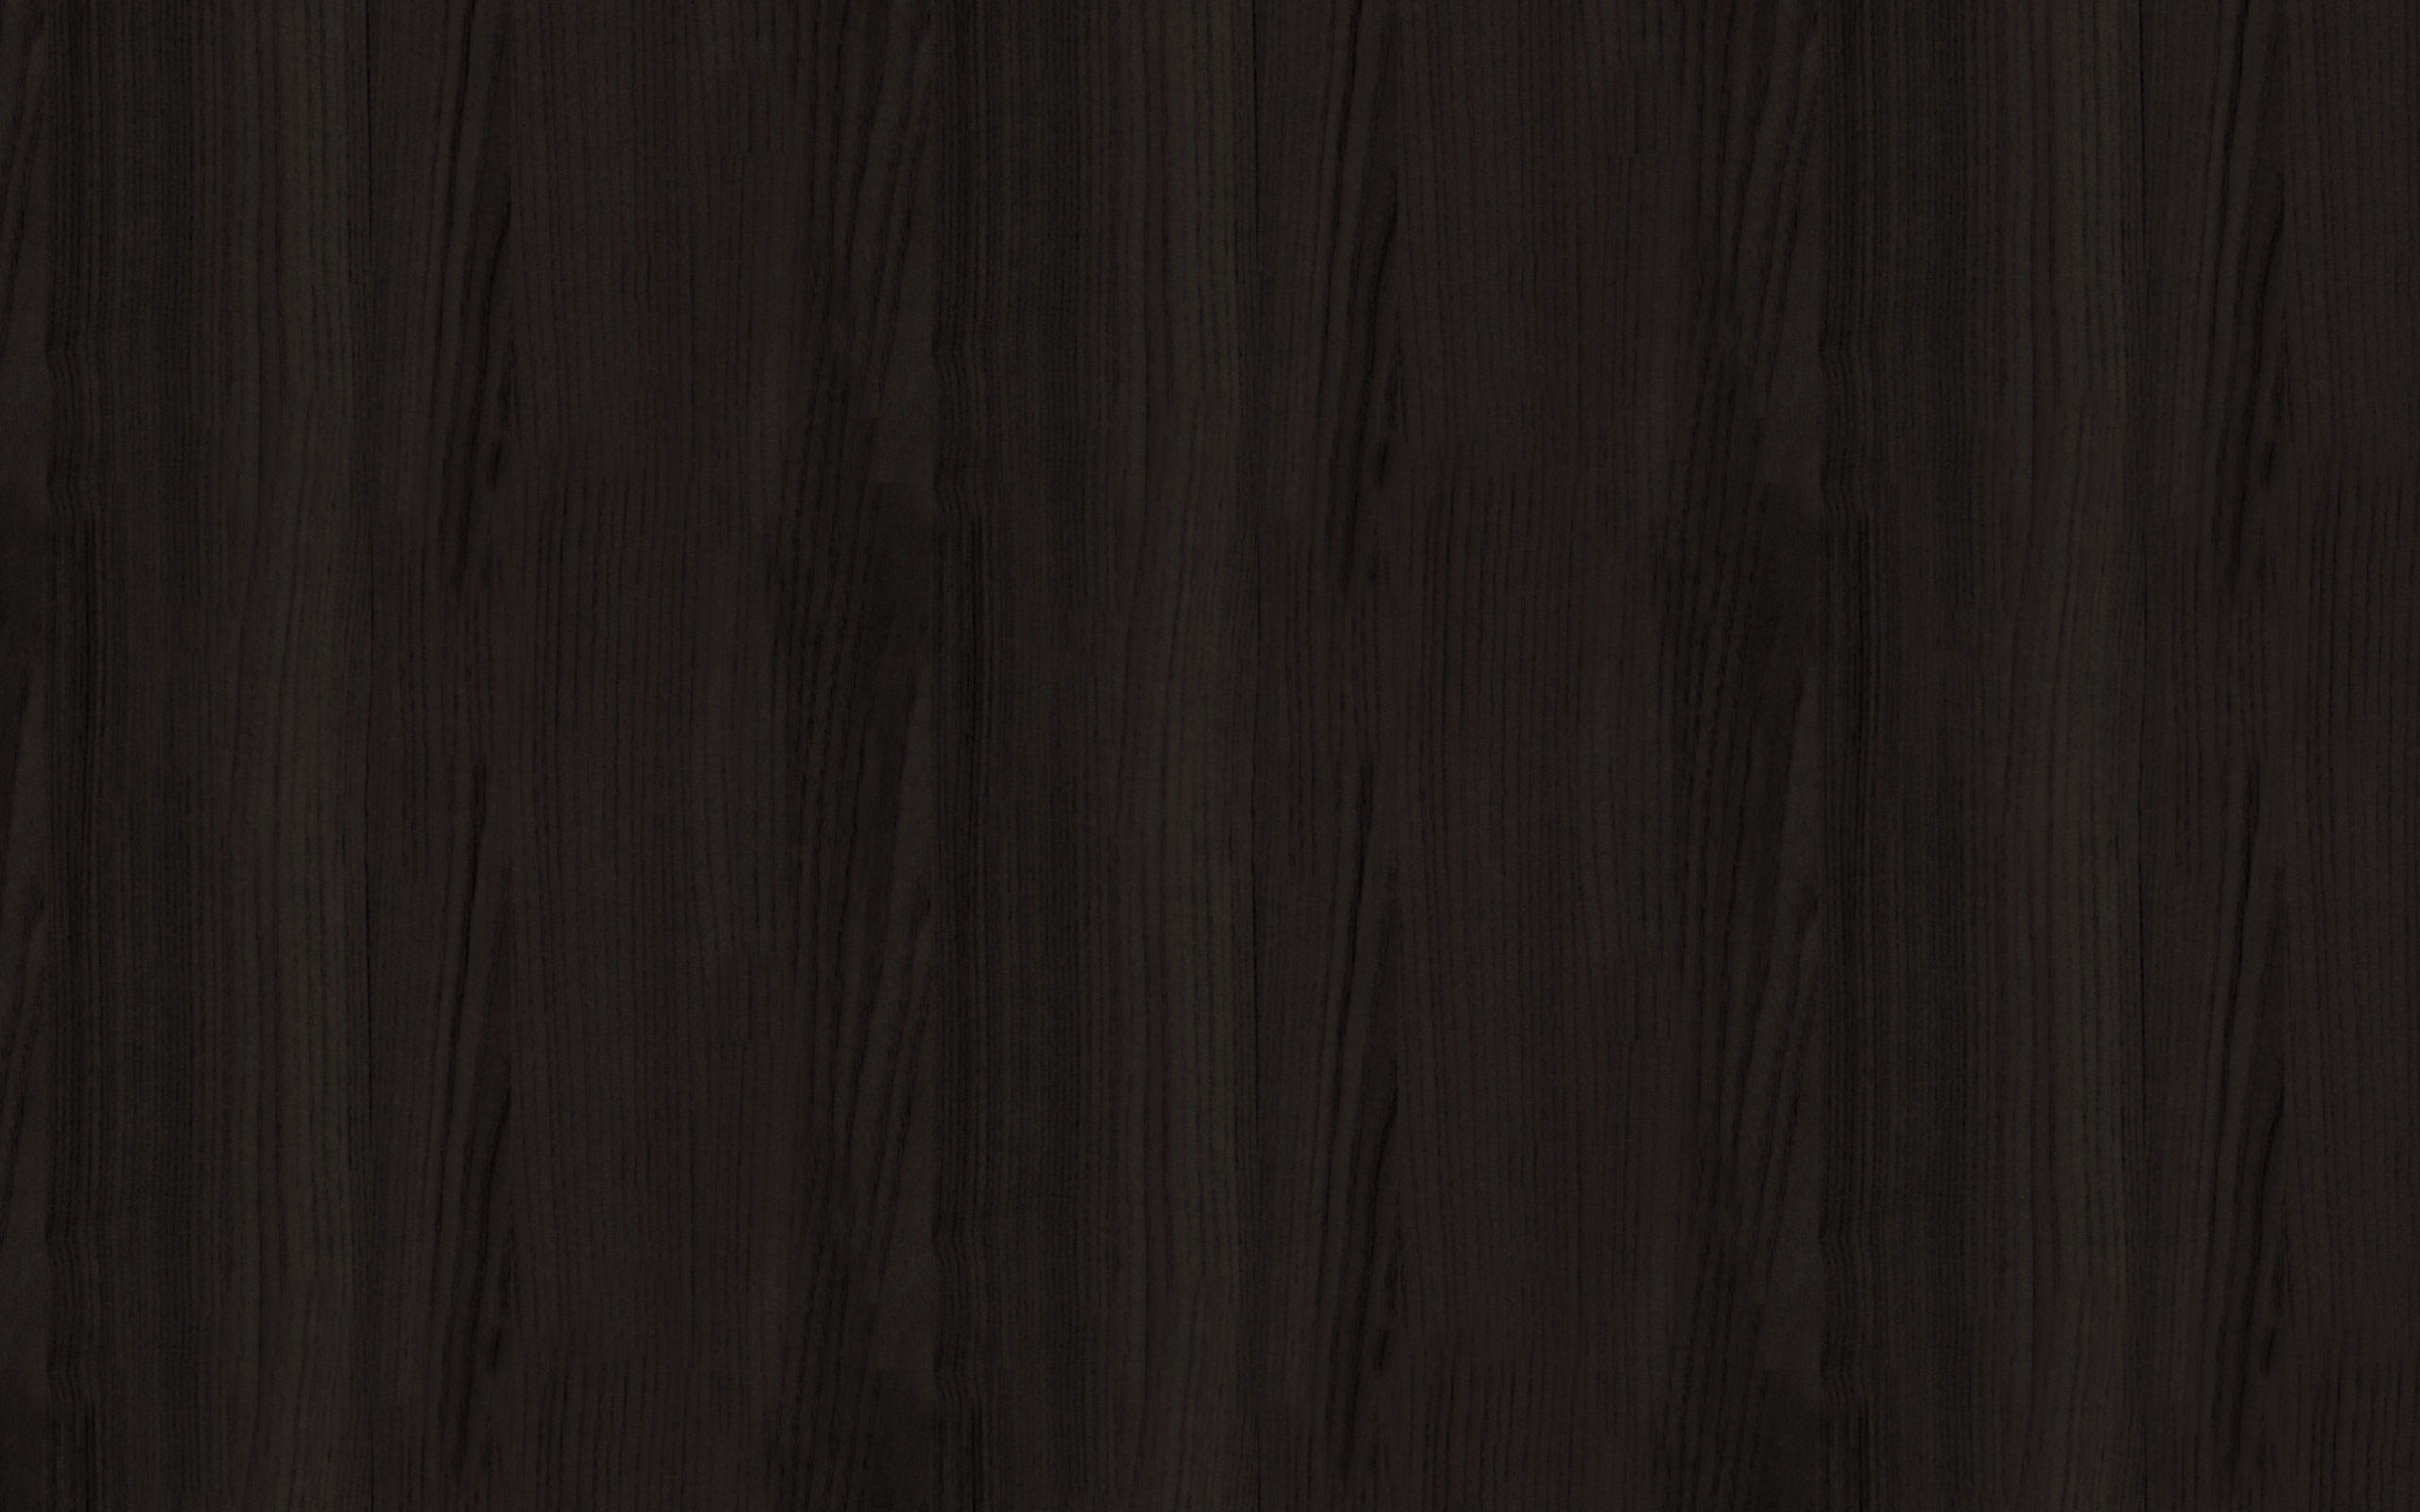 High Res Wood Desktop Background